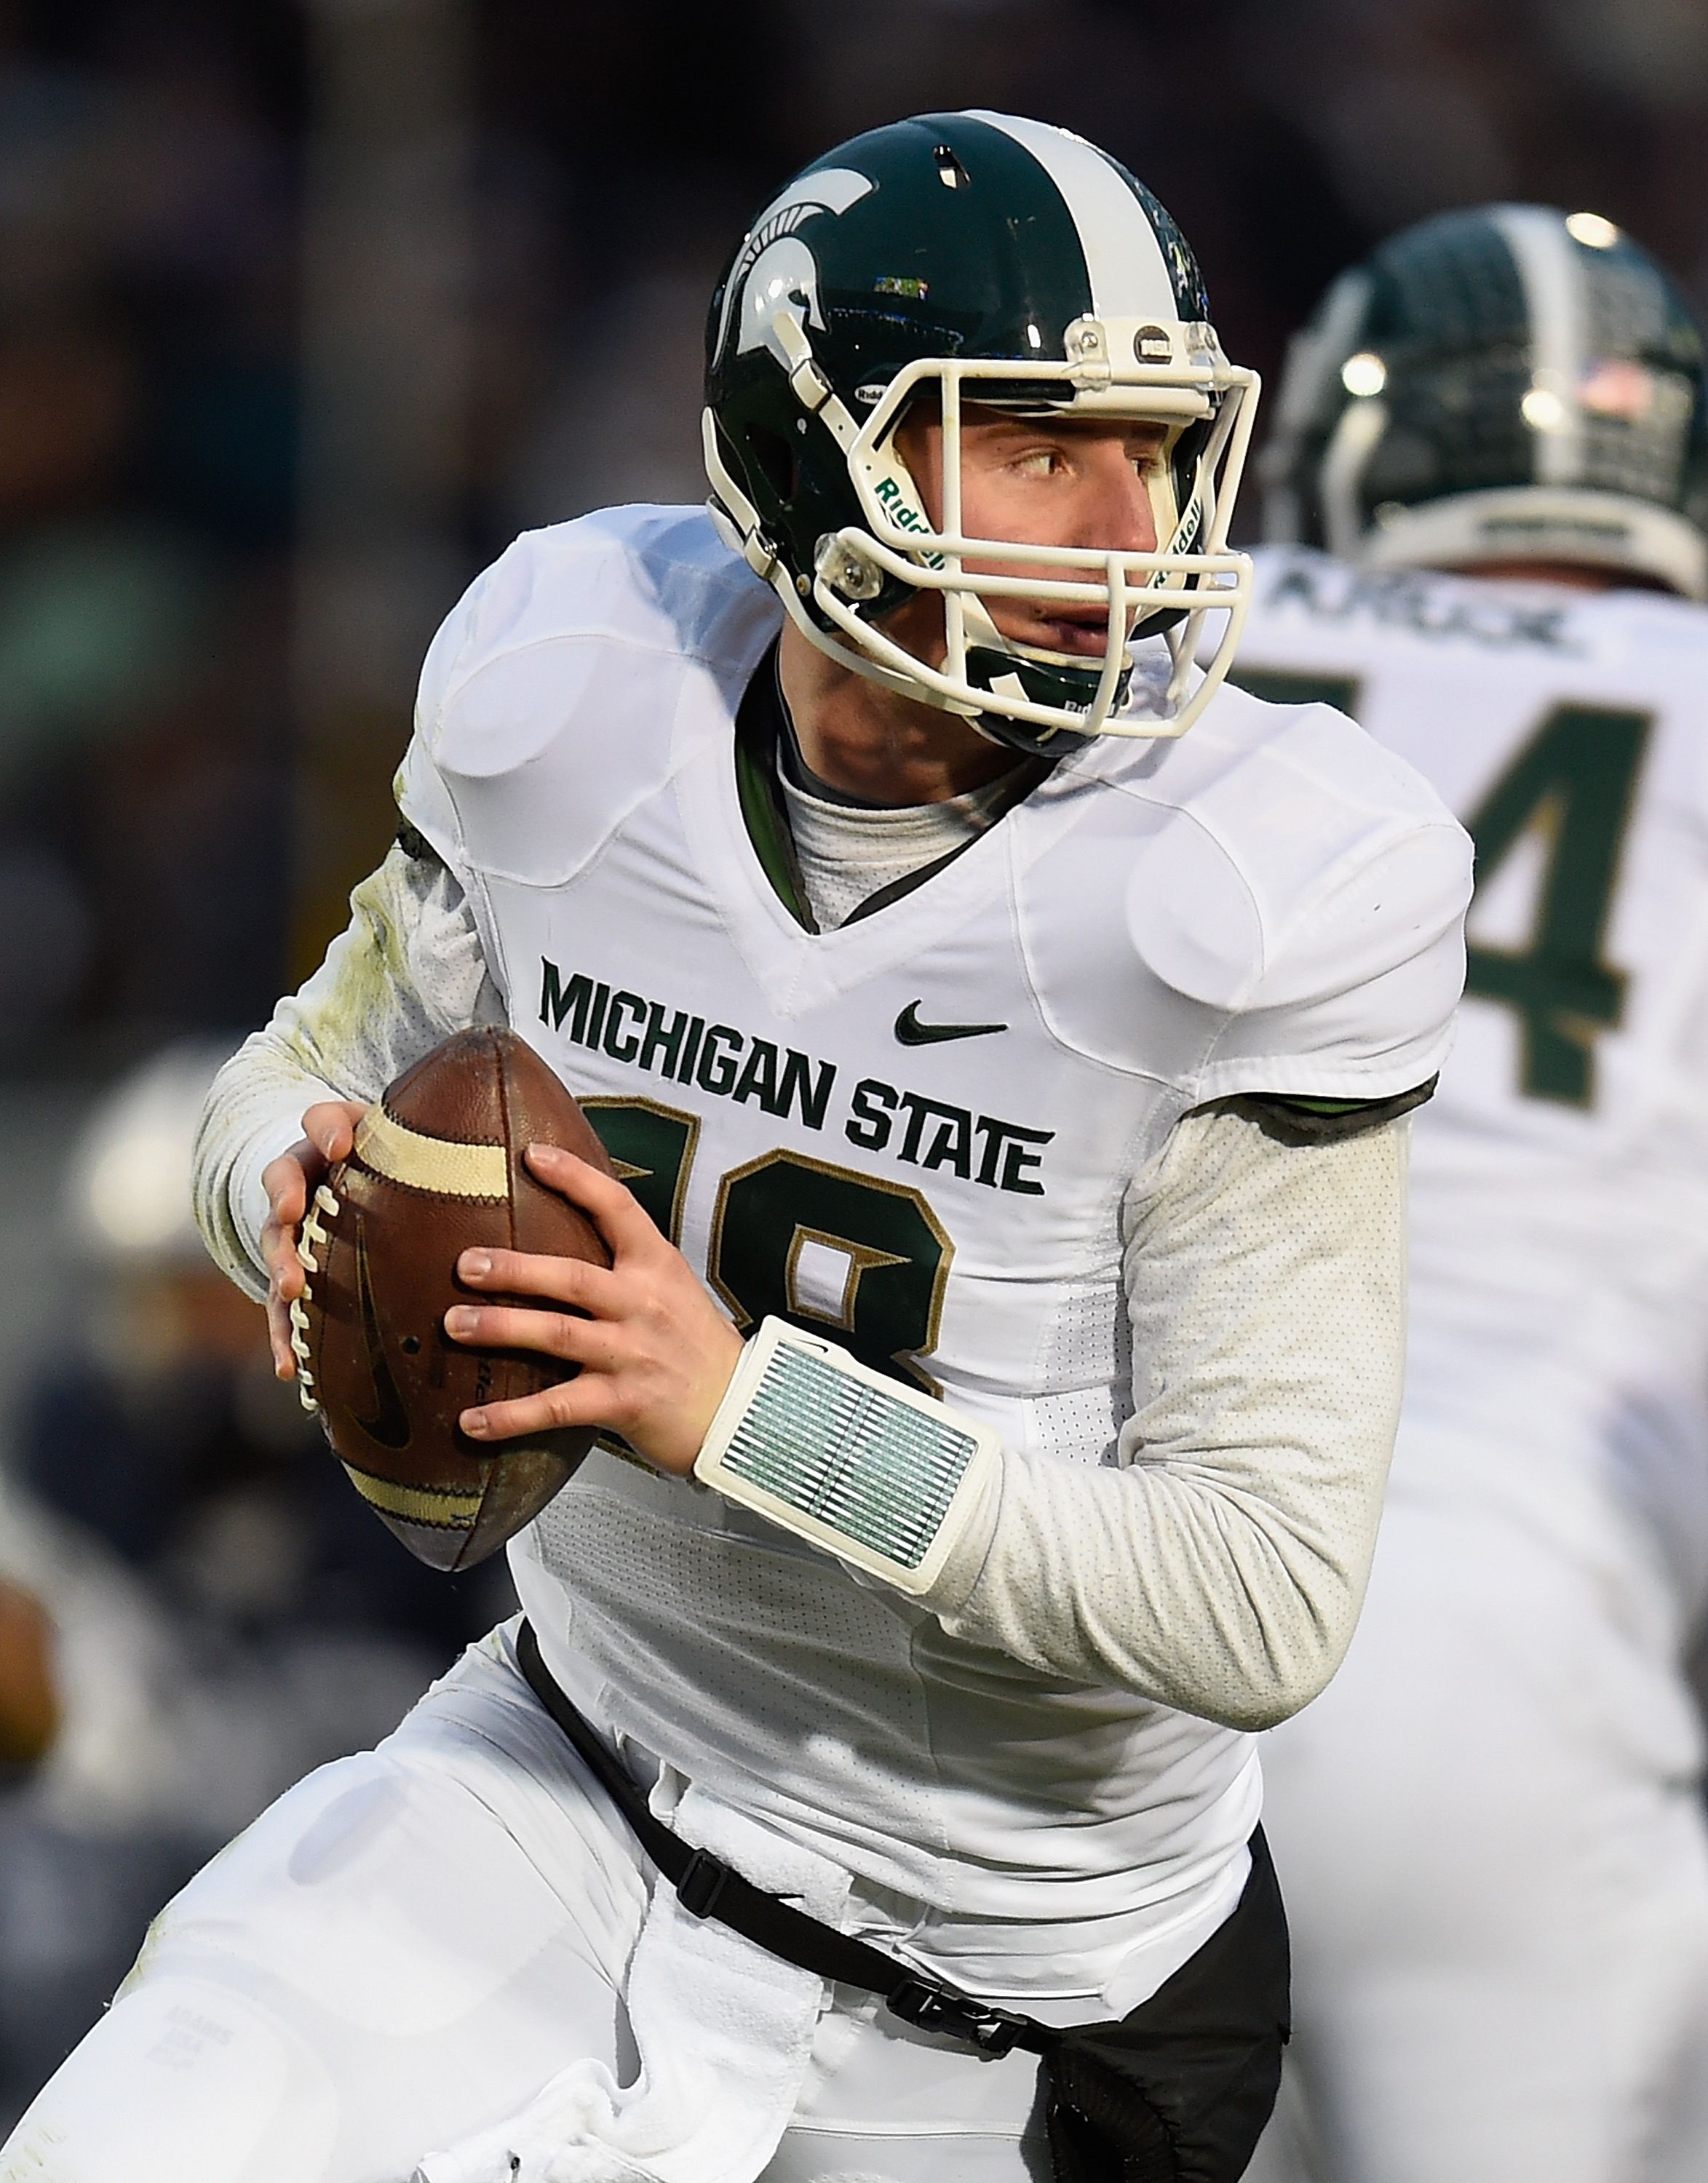 STATE COLLEGE, PA - NOVEMBER 29:  Connor Cook #18 of the Michigan State Spartans looks to pass during the second quarter against the Penn State Nittany Lions at Beaver Stadium on November 29, 2014 in State College, Pennsylvania.  (Photo by Joe Sargent/Getty Images)